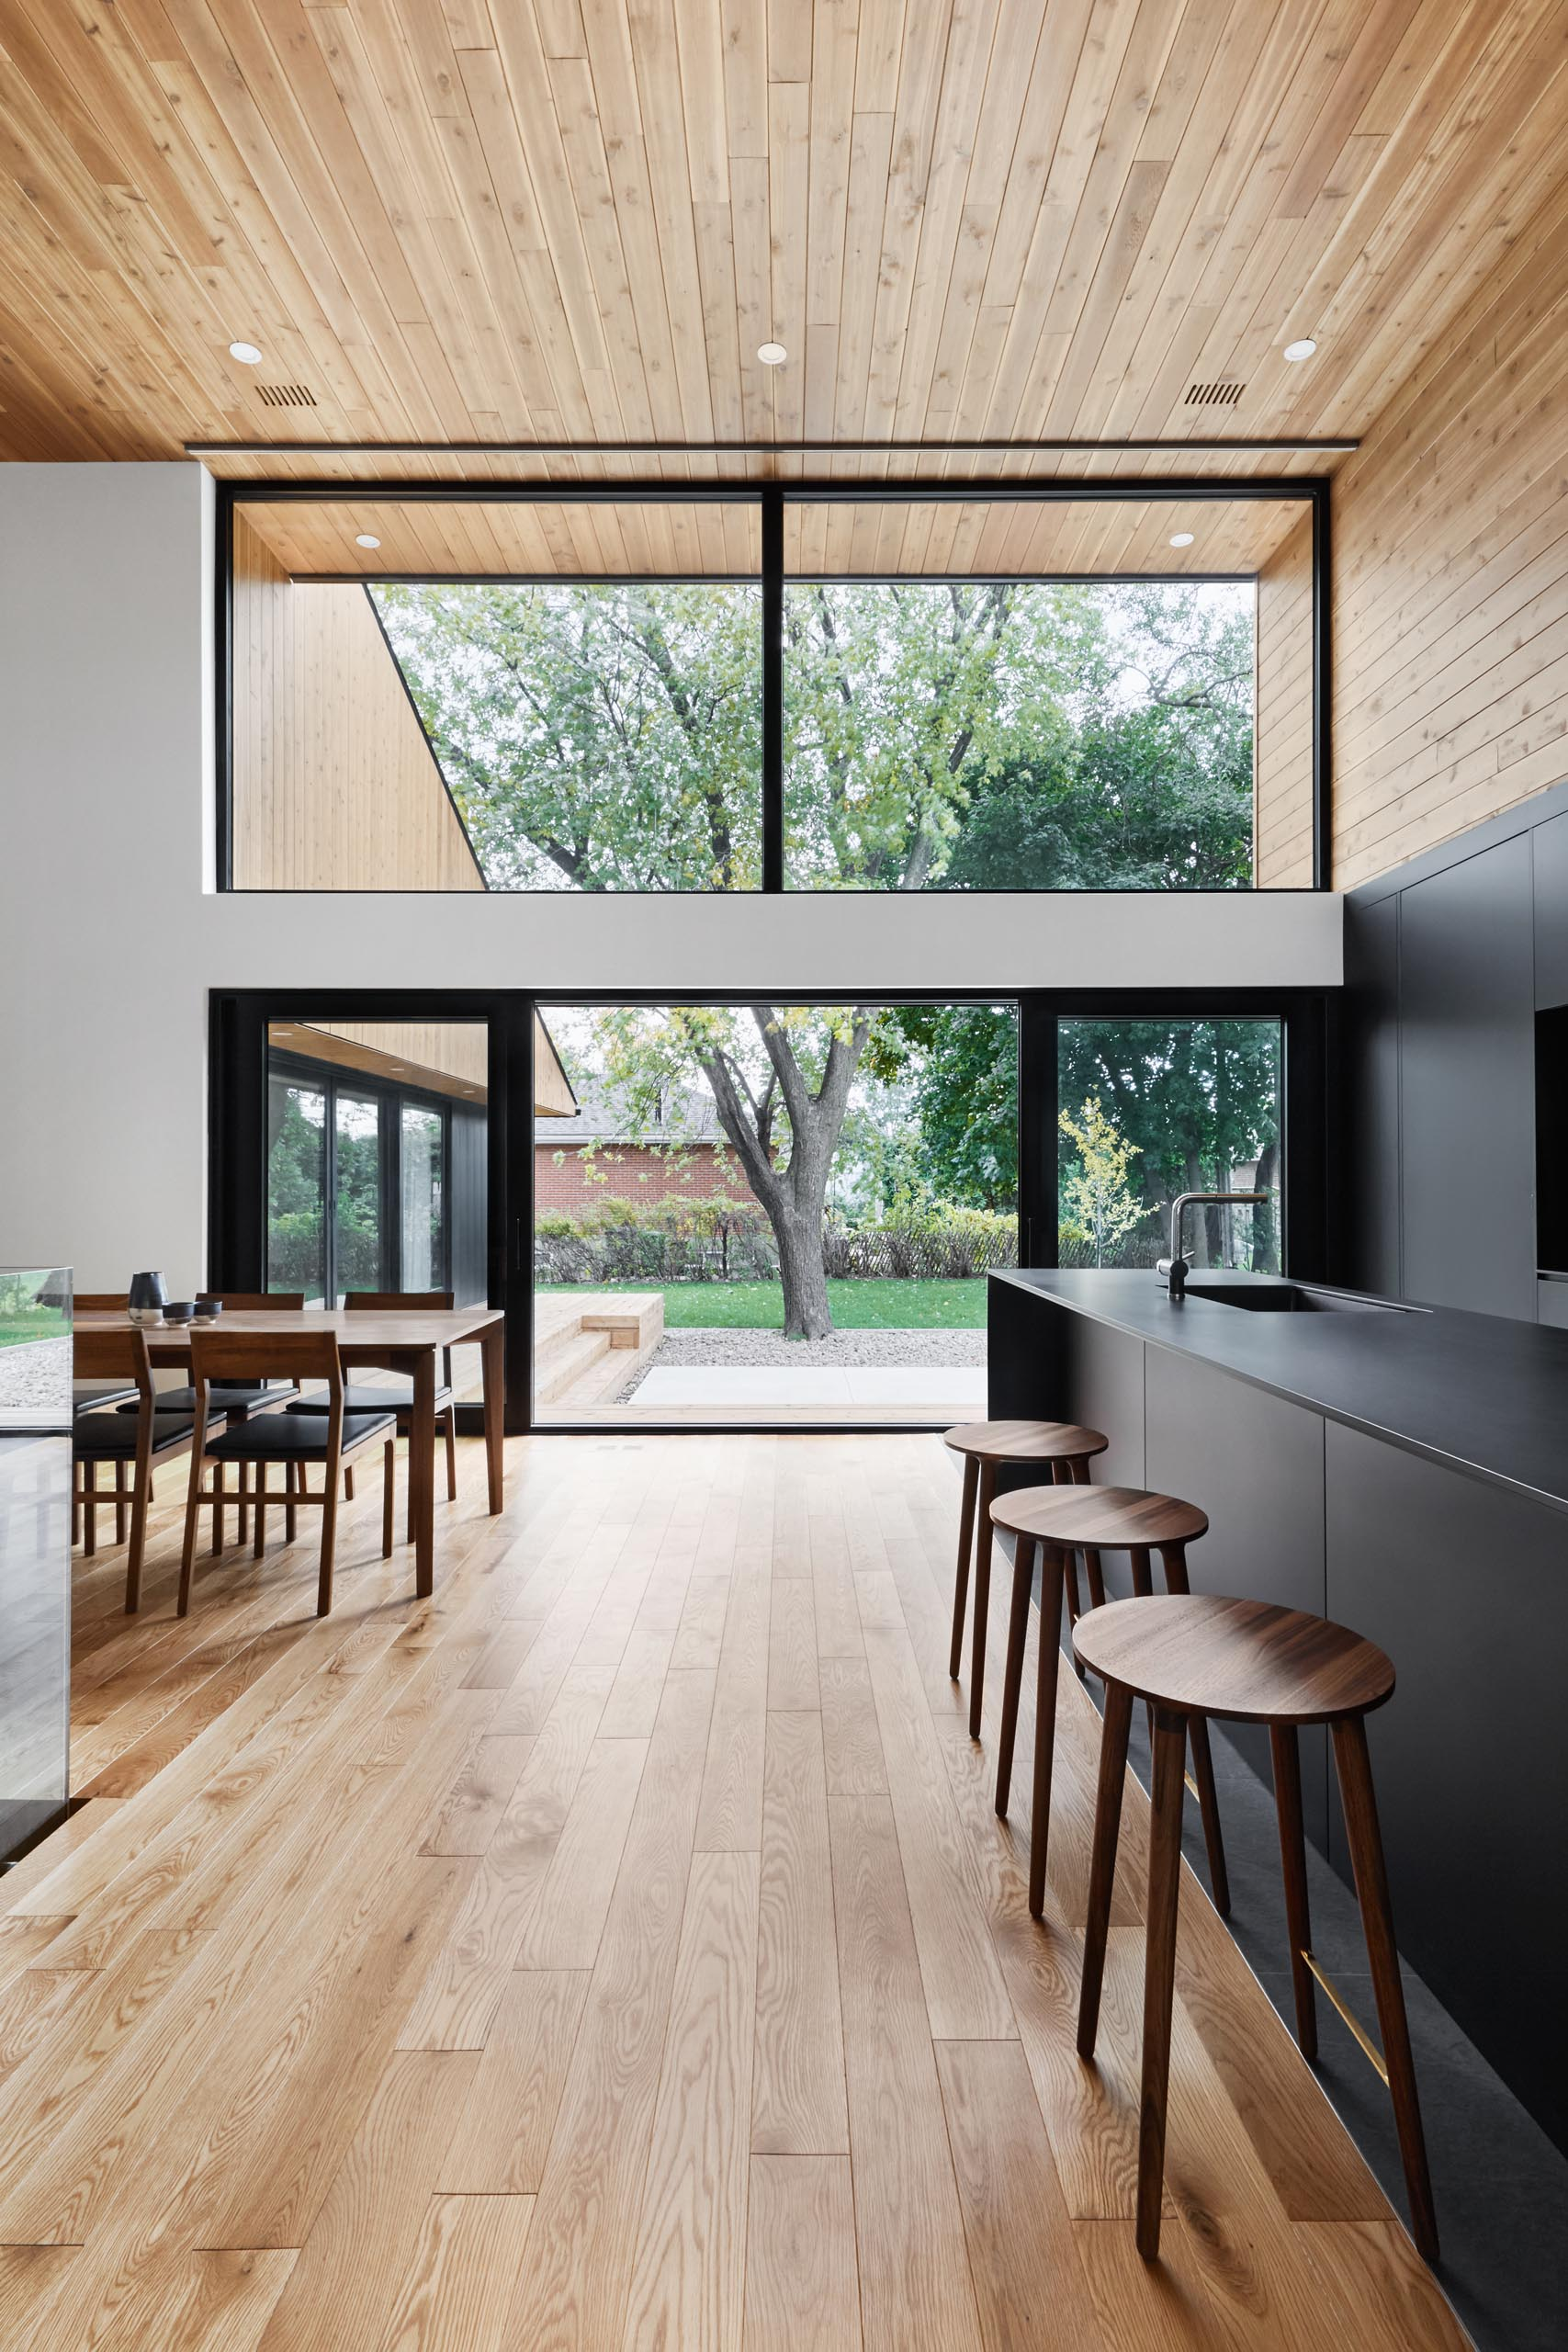 A modern home with high wood ceilings, large windows, a matte black kitchen, and open plan interior.